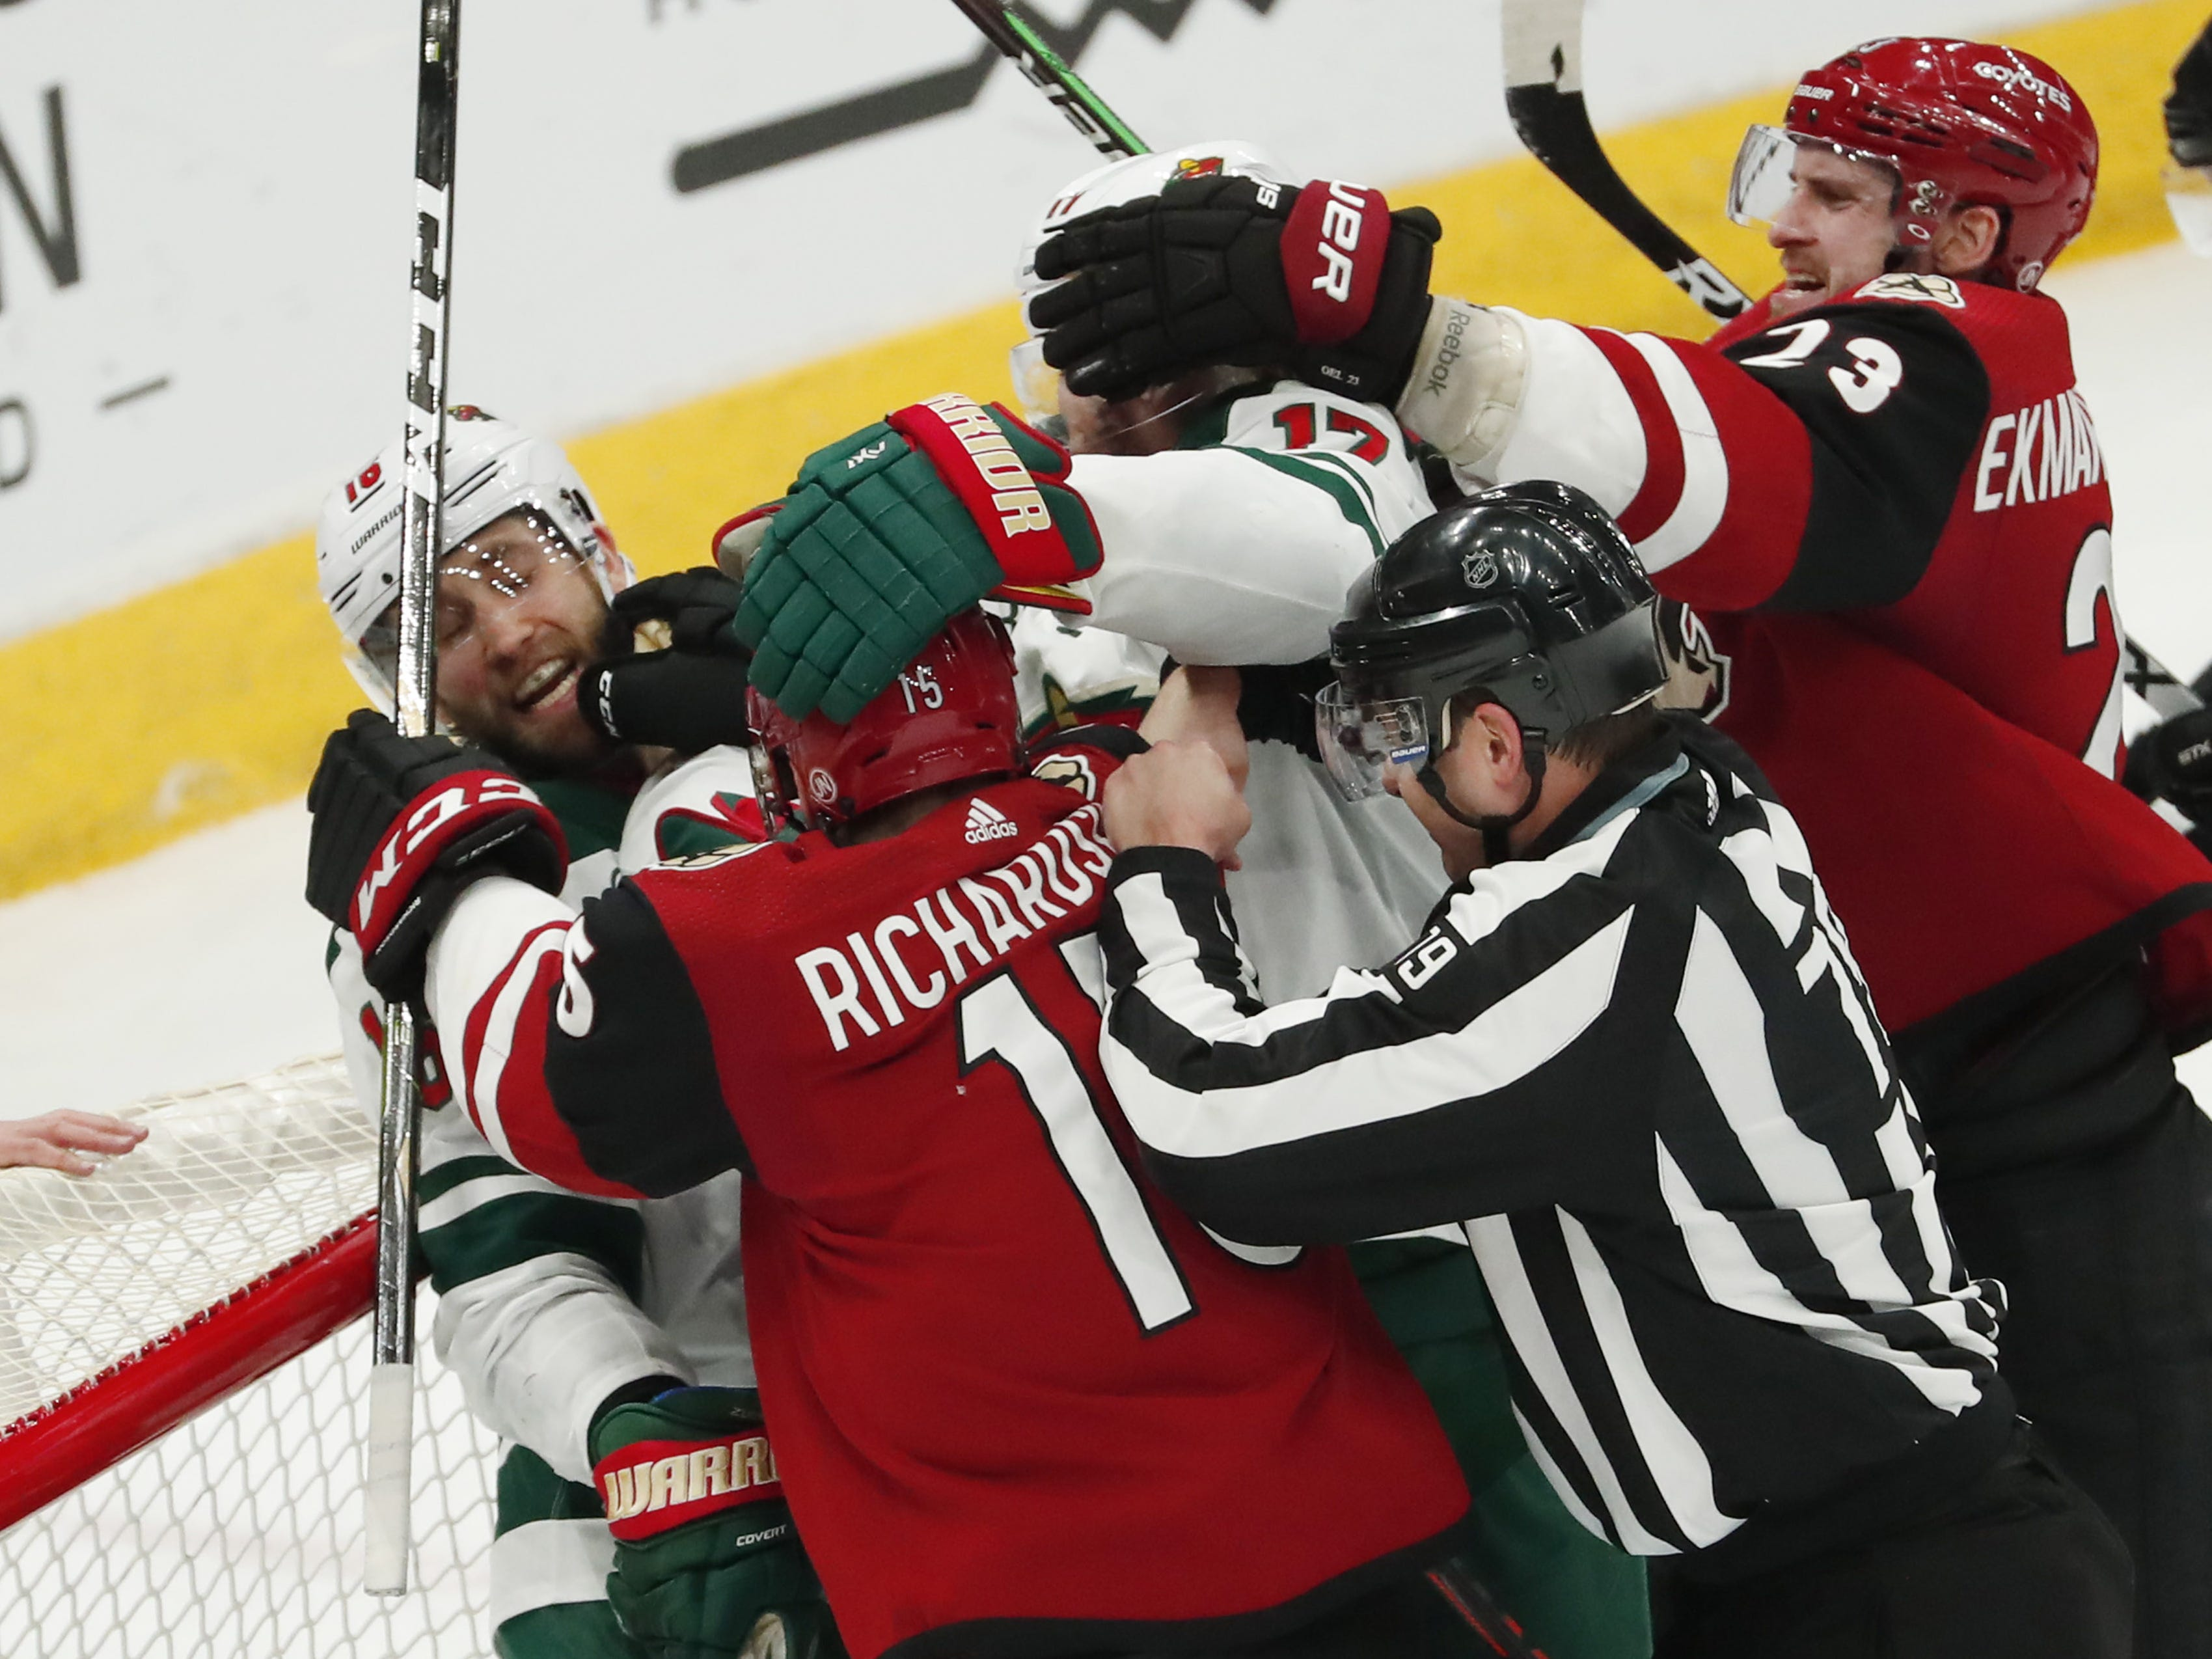 Arizona Coyotes center Brad Richardson (15) mixes it up with Minnesota Wild left wing Jason Zucker (left) during the third period in Glendale March 31, 2019.